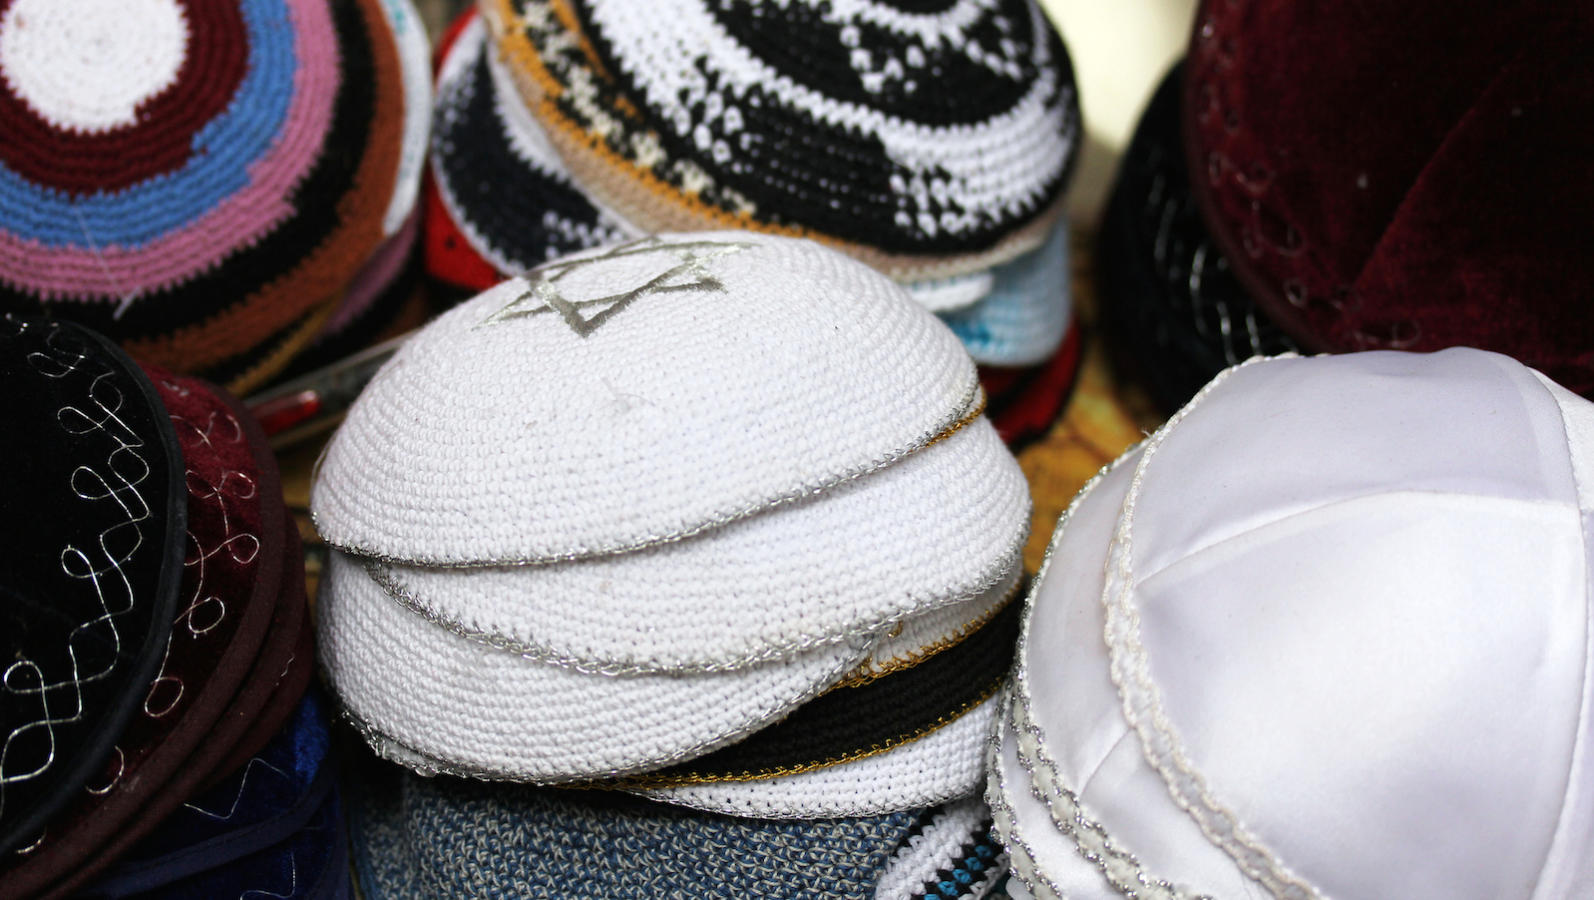 Ask the Expert: Which Kippah Should I Wear? | My Jewish Learning